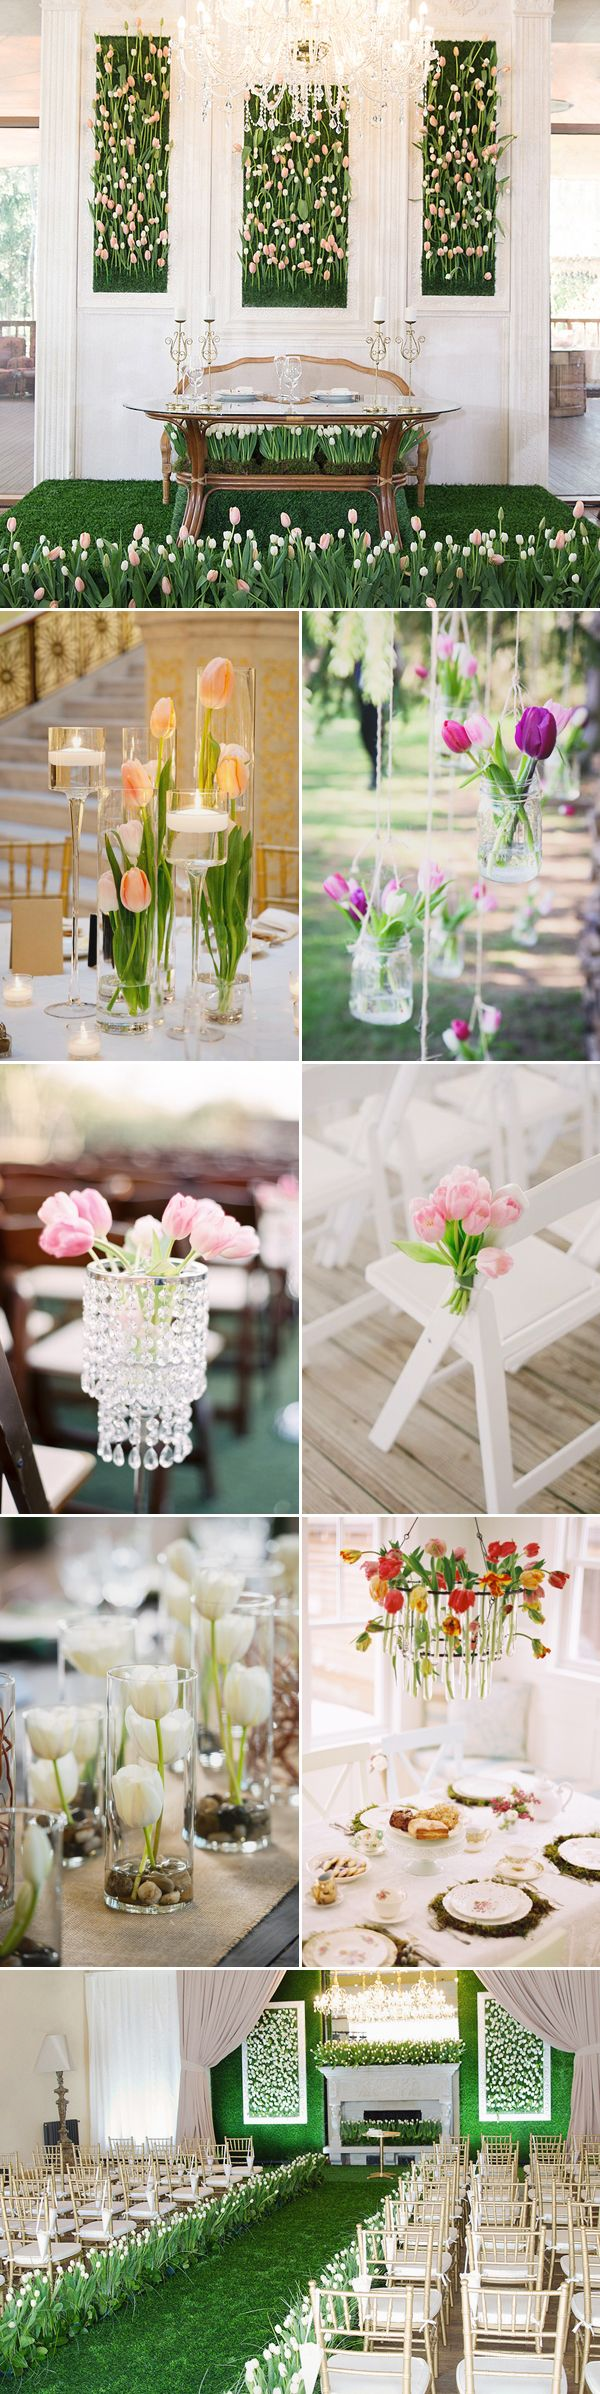 20 Beautiful Ways to Decorate Your Wedding with Tulips!